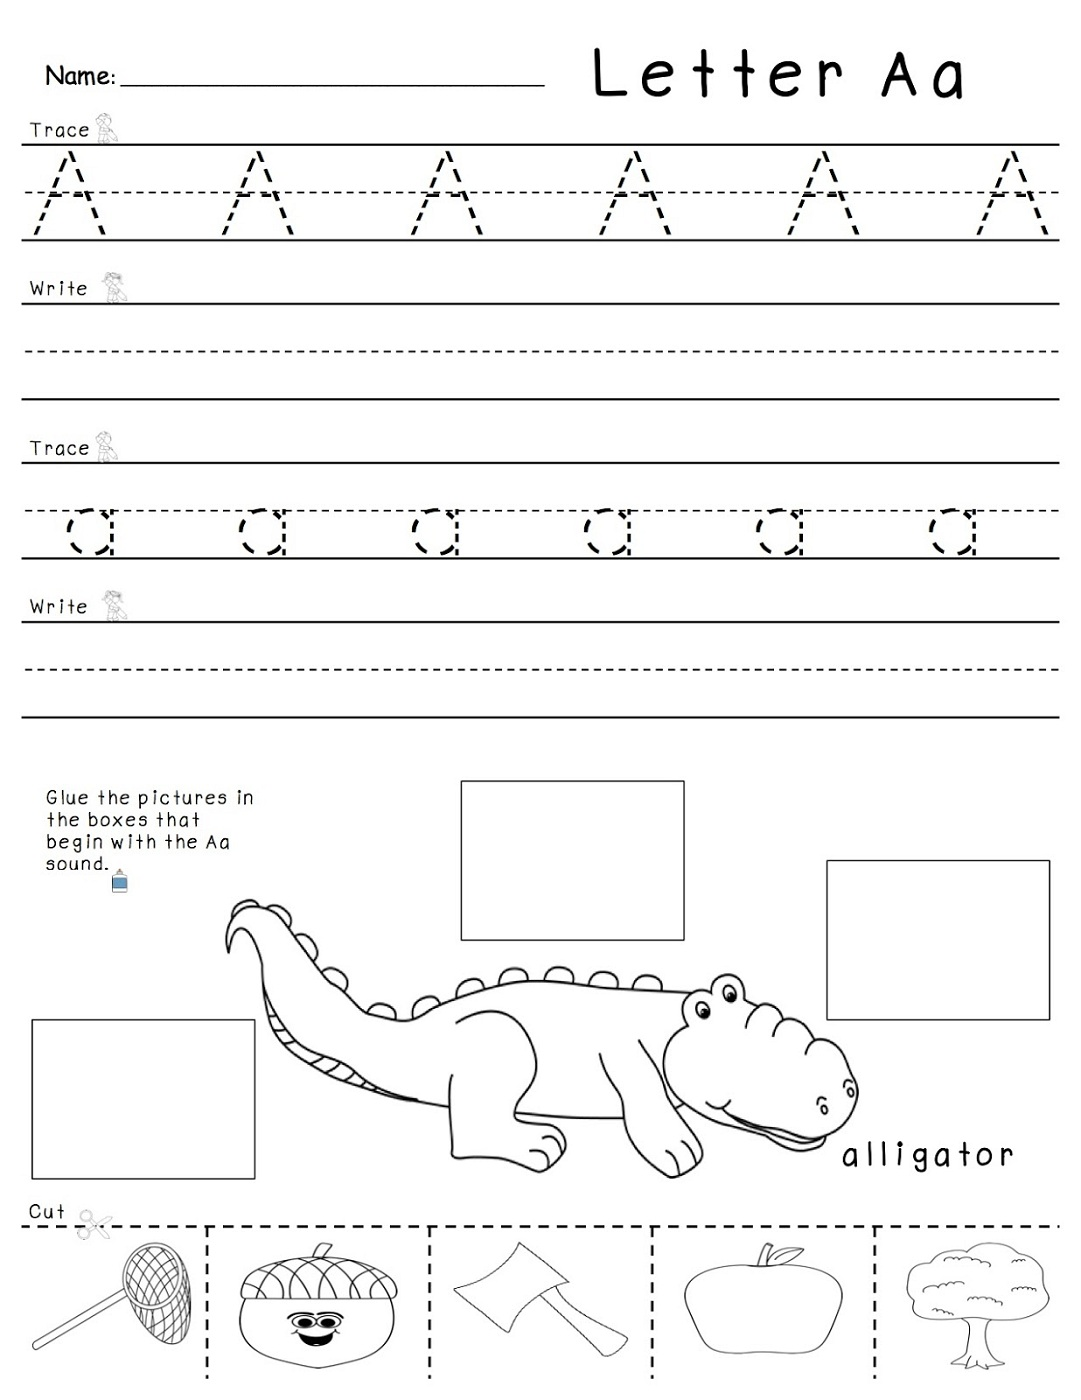 Tracing abc letters 8613123 aks flightfo highway abc cards print the making learning funhelp kids remember letters with this free alphabet tracingletters of the alphabet for kids 126 abc alphabet altavistaventures Choice Image